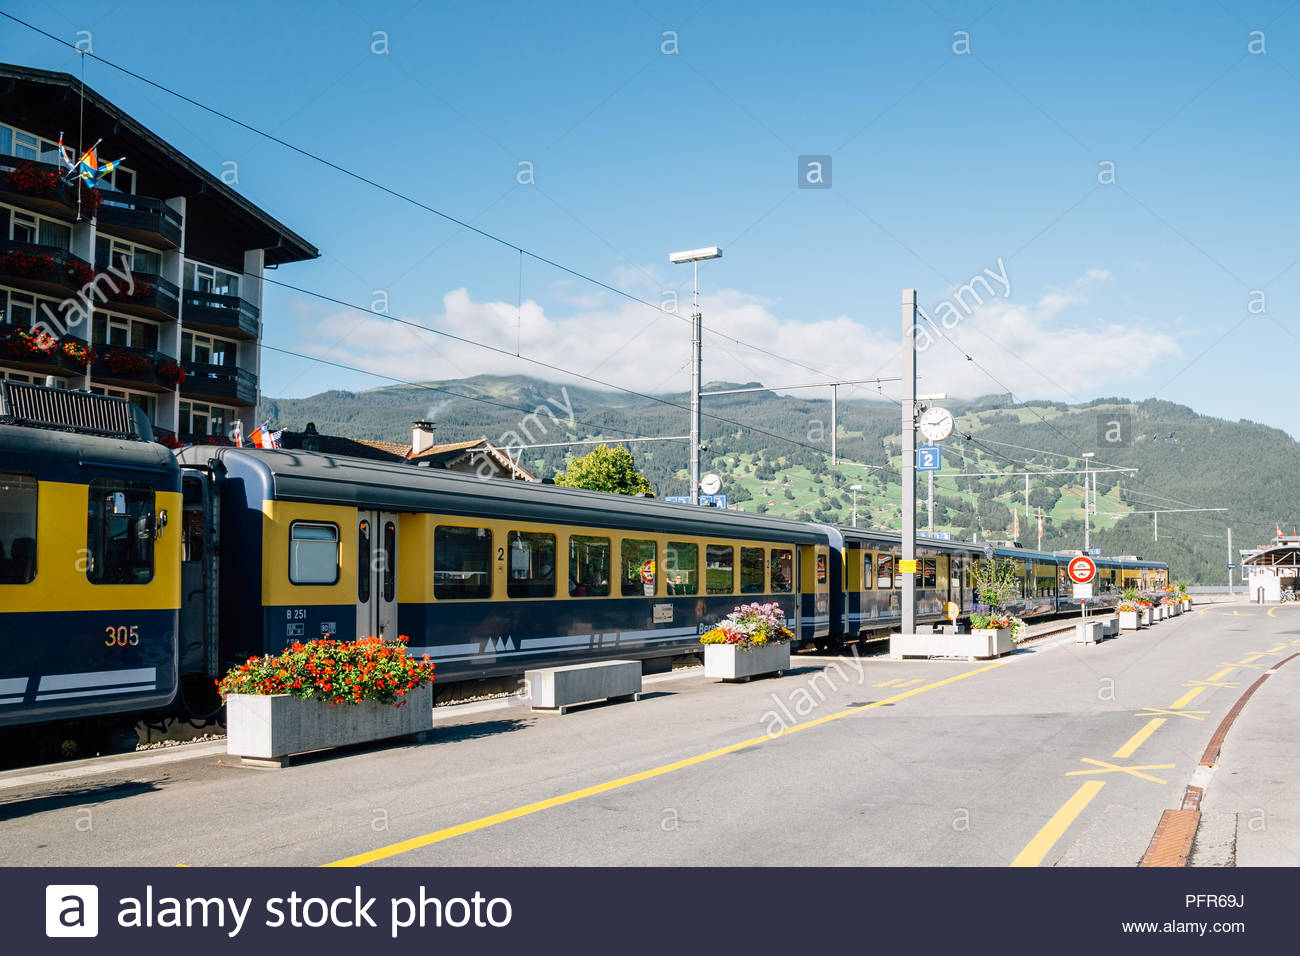 Grindelwald, Switzerland - August 22, 2016 : Grindelwald train station with mountain - Stock Image